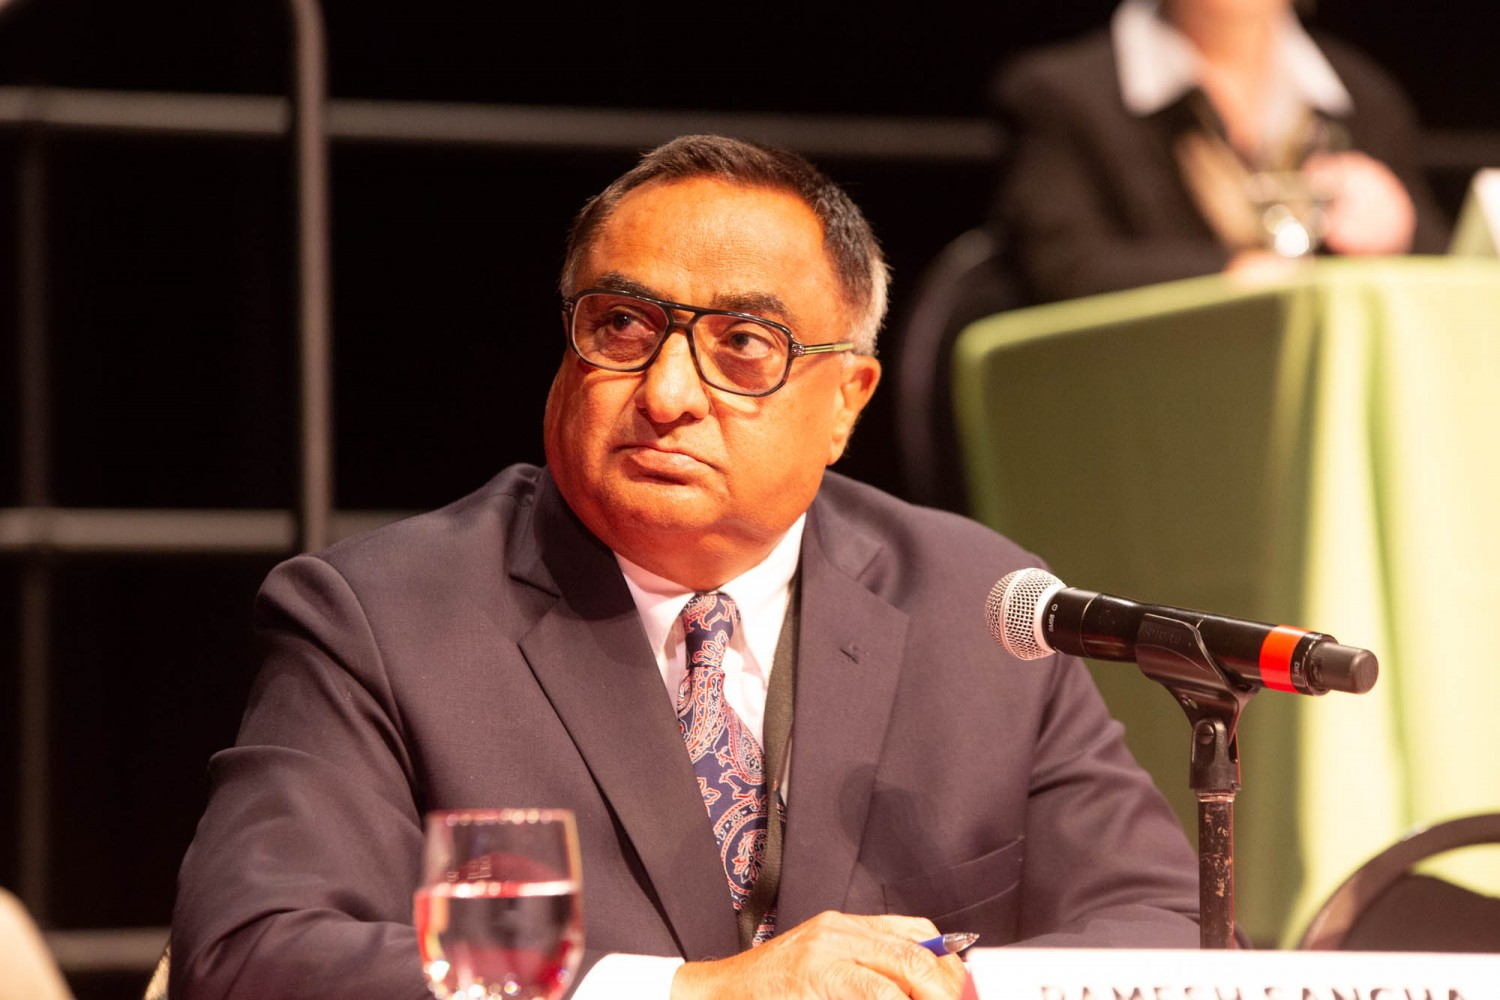 Ramesh Sangha says much with few words but ultimately fails to deliver for Brampton